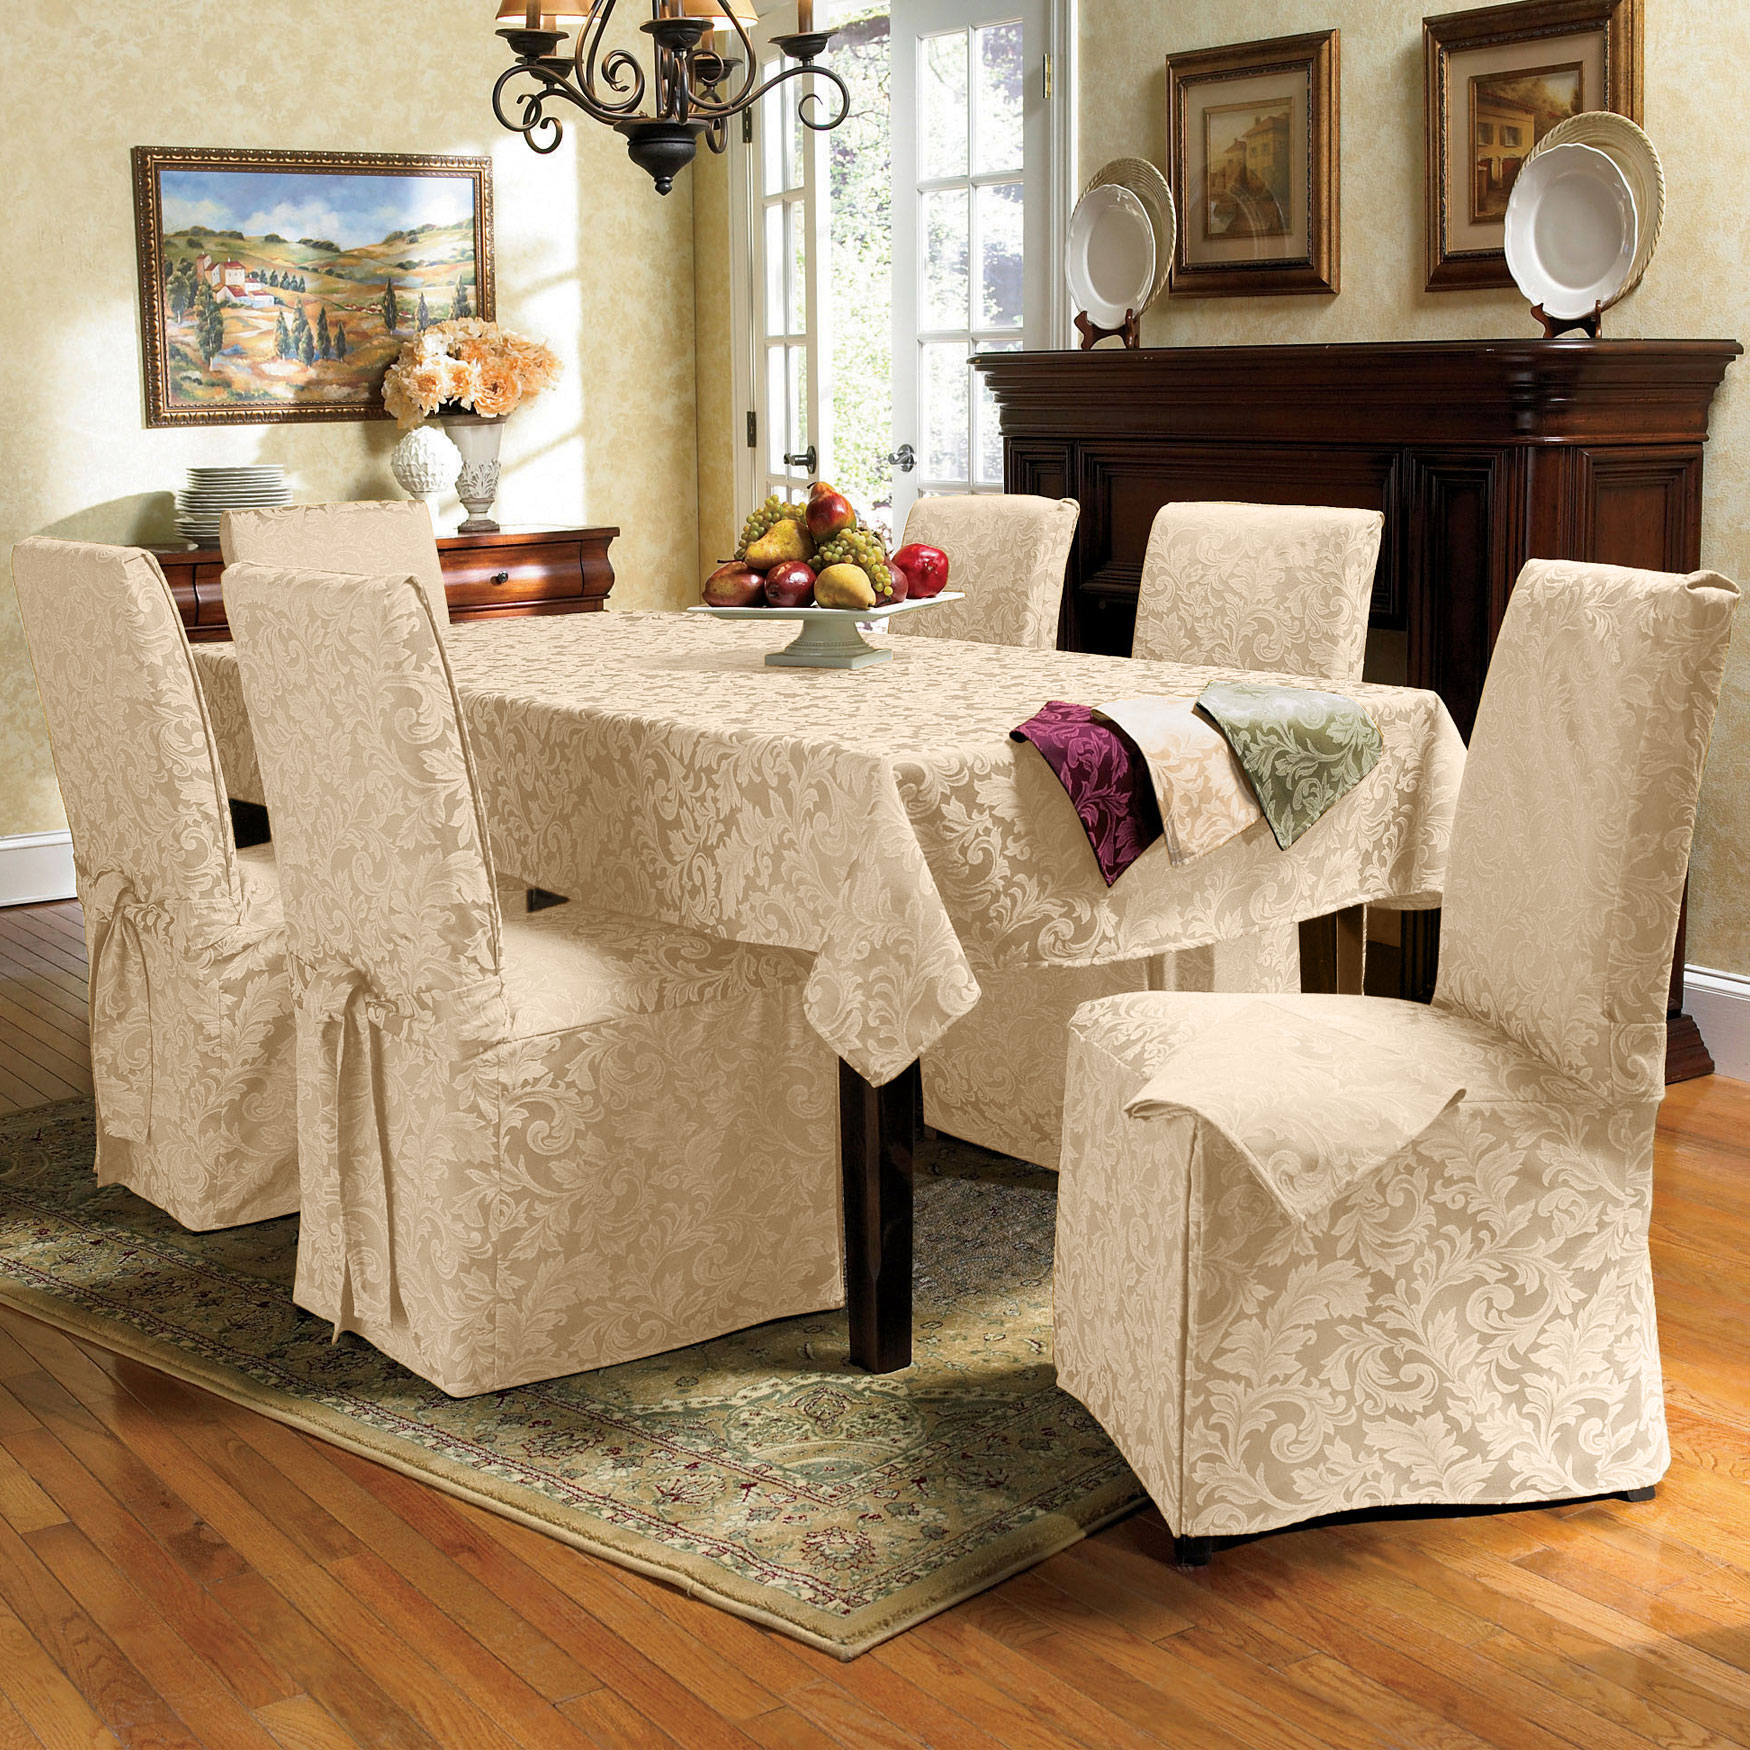 9-Pc. Round Damask Table Linen Set,